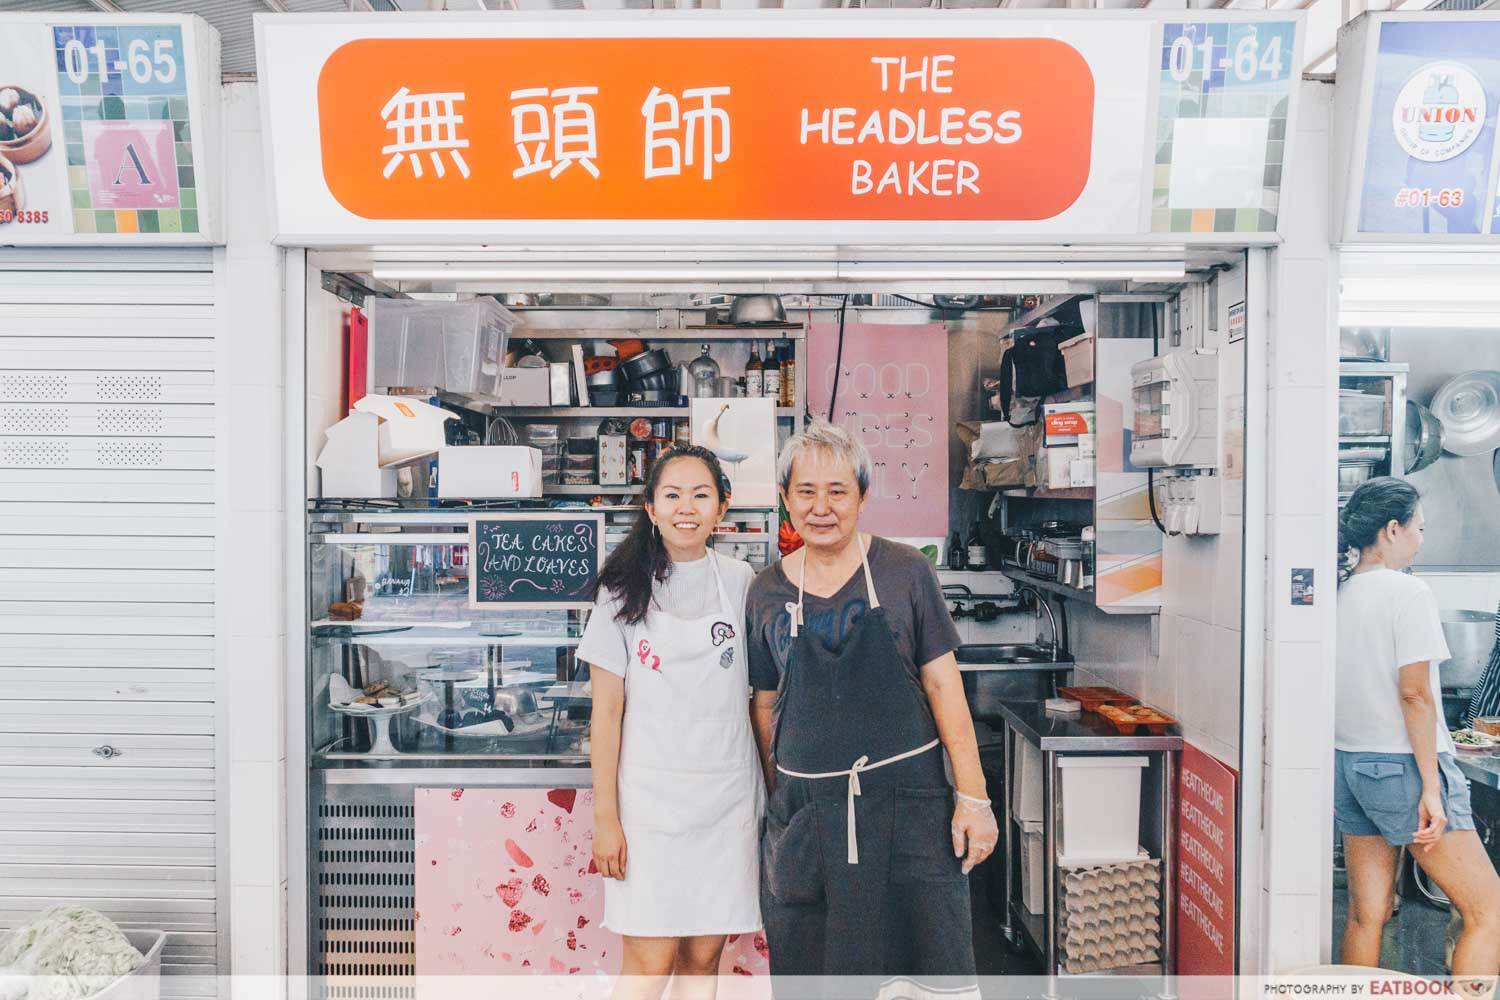 the headless baker - young owner and father